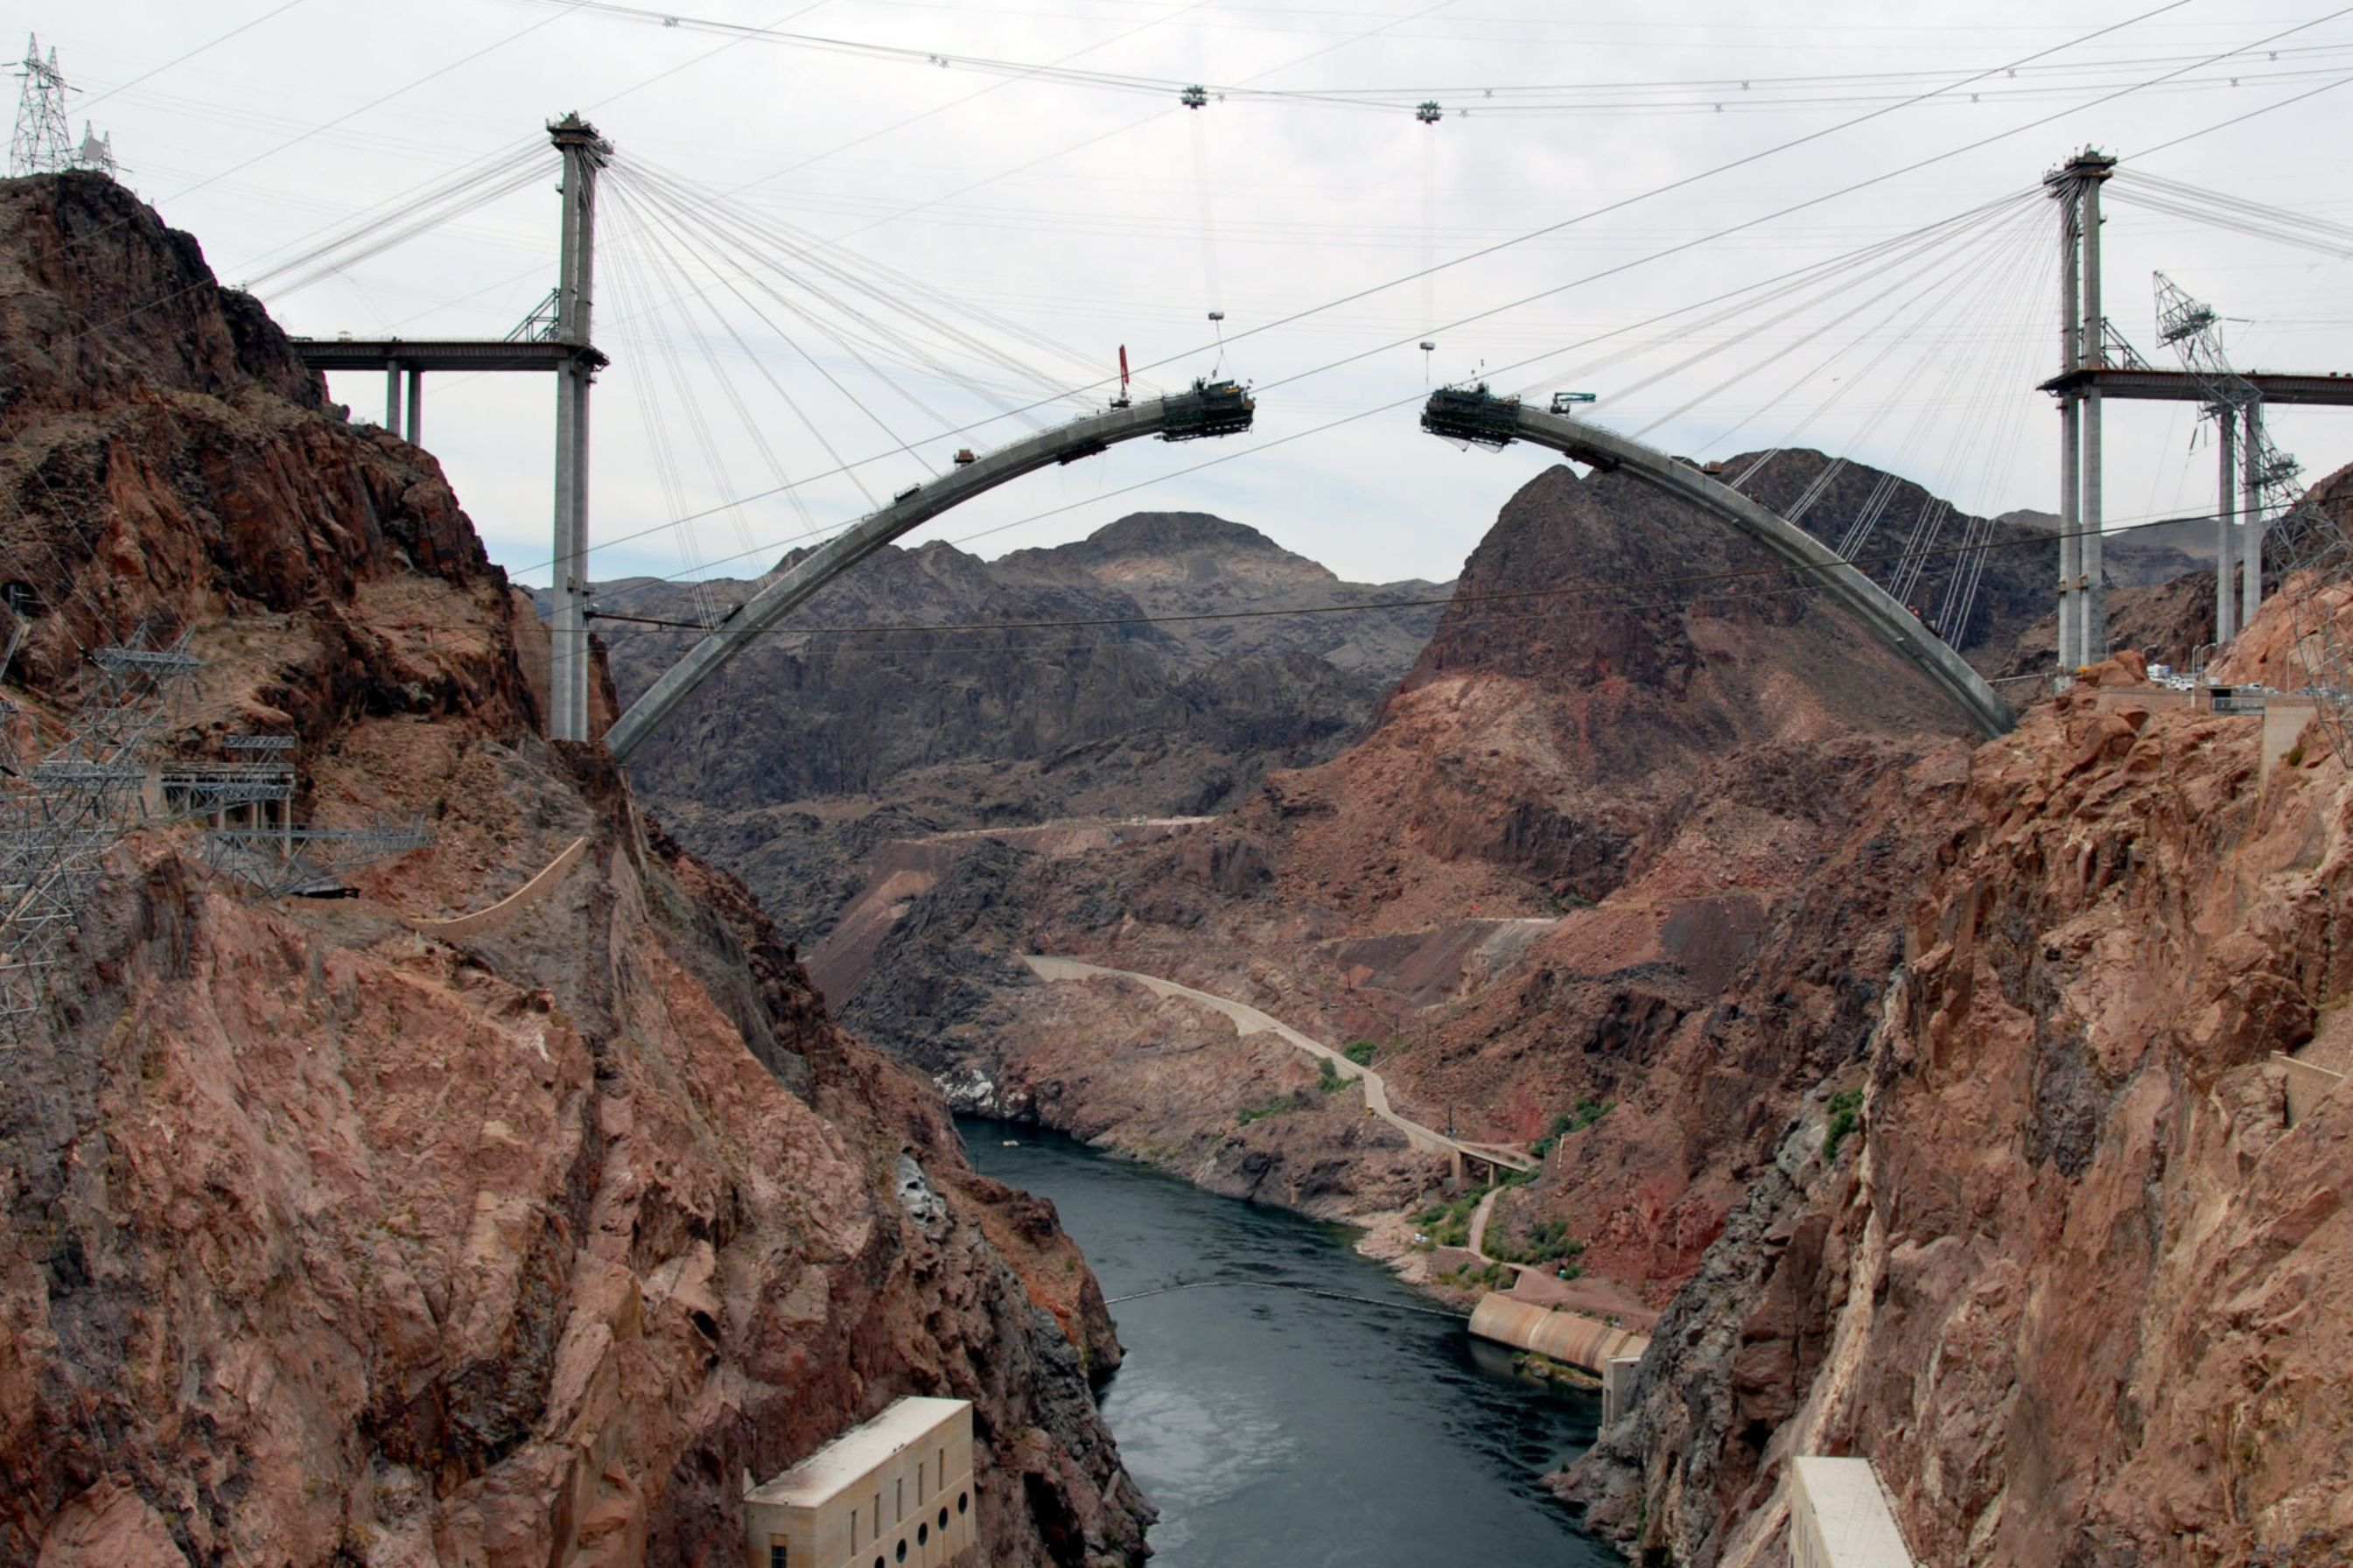 Colorado River Bridge precast concrete structure produced with Sika admixtures